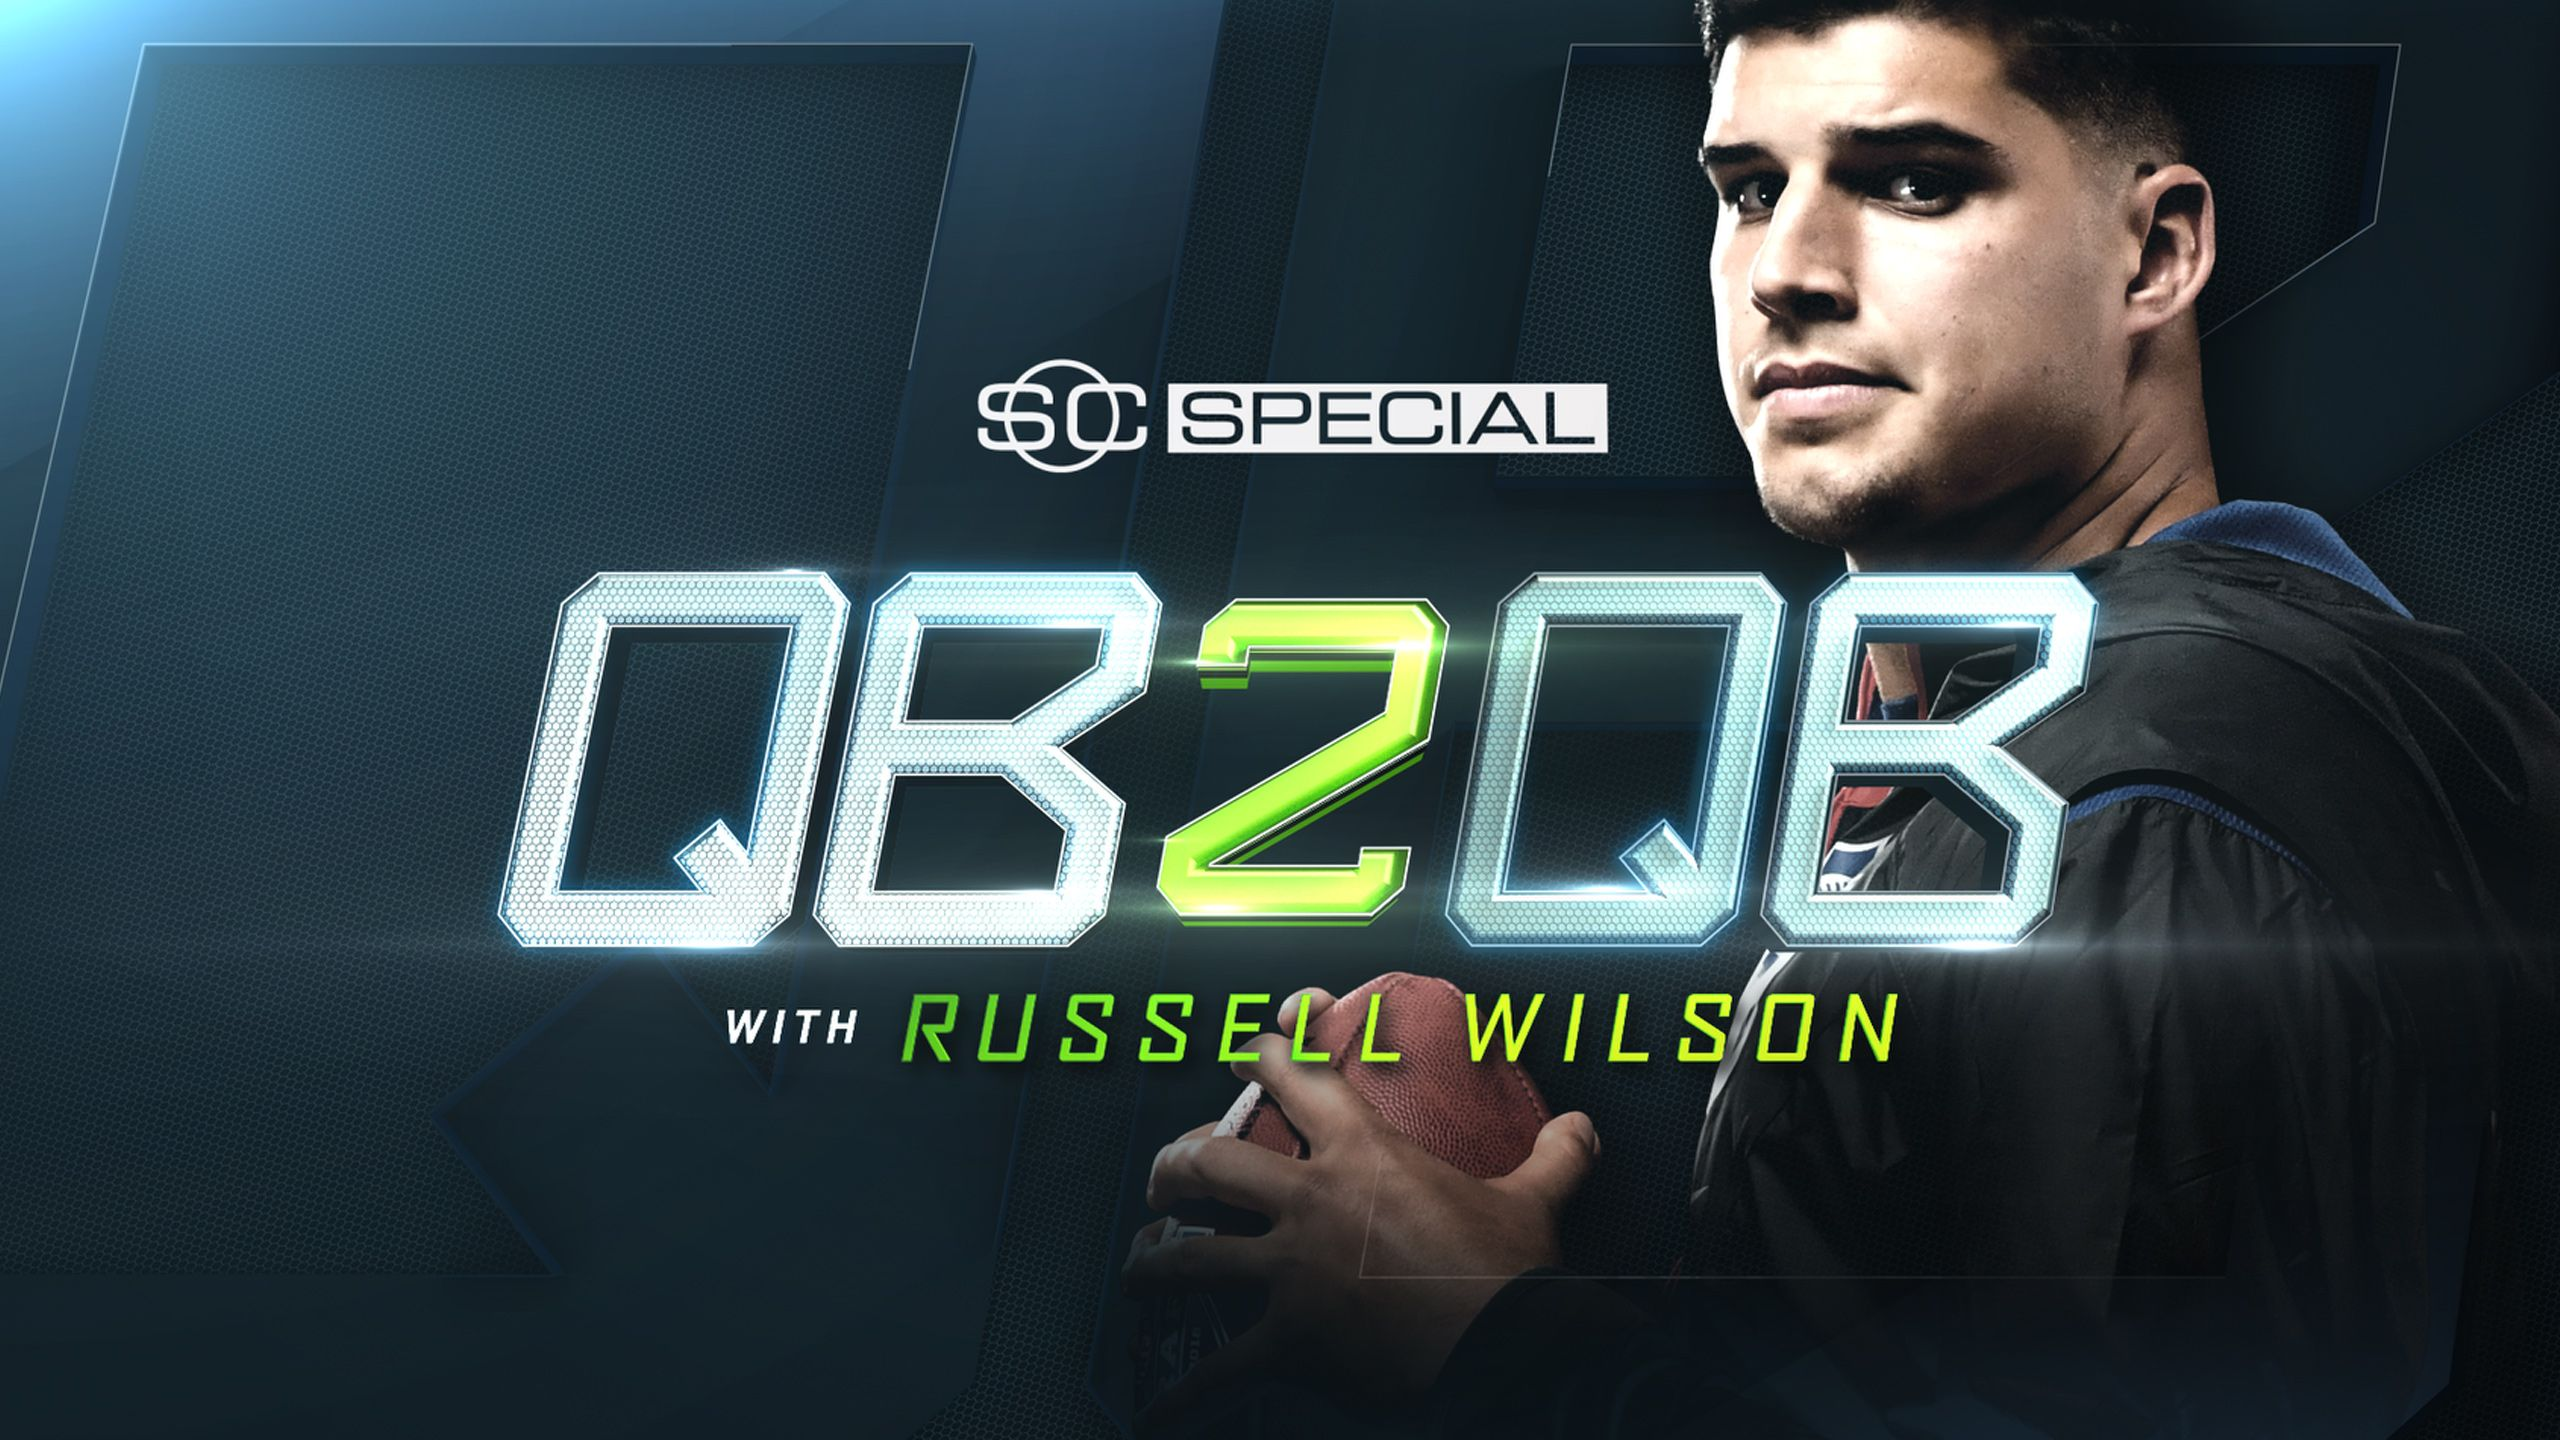 SportsCenter Special presented by Maui Jim Sunglasses: QB2QB with Russell Wilson and Mason Rudolph